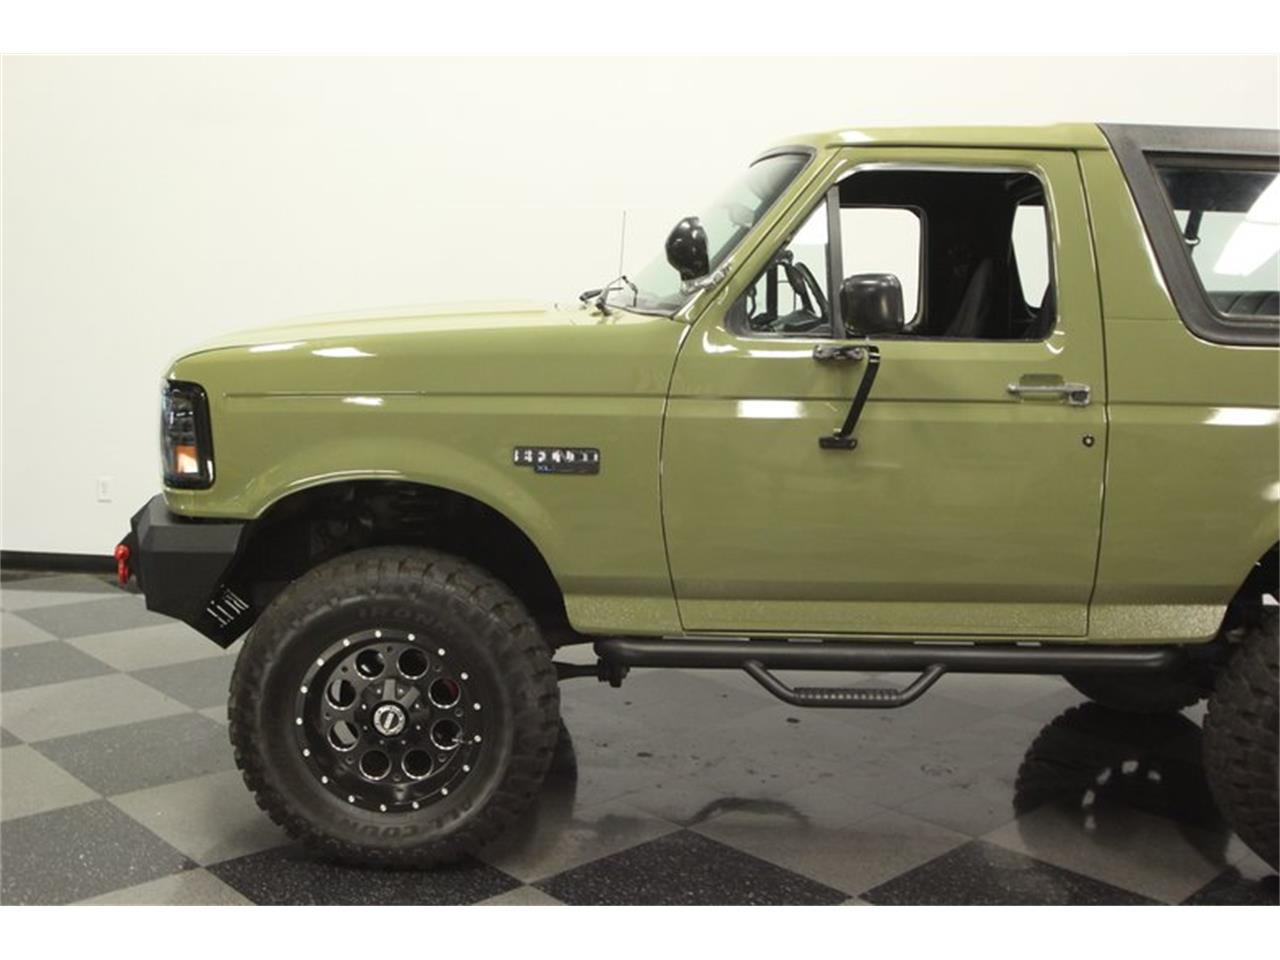 1996 Ford Bronco for sale in Lutz, FL – photo 24